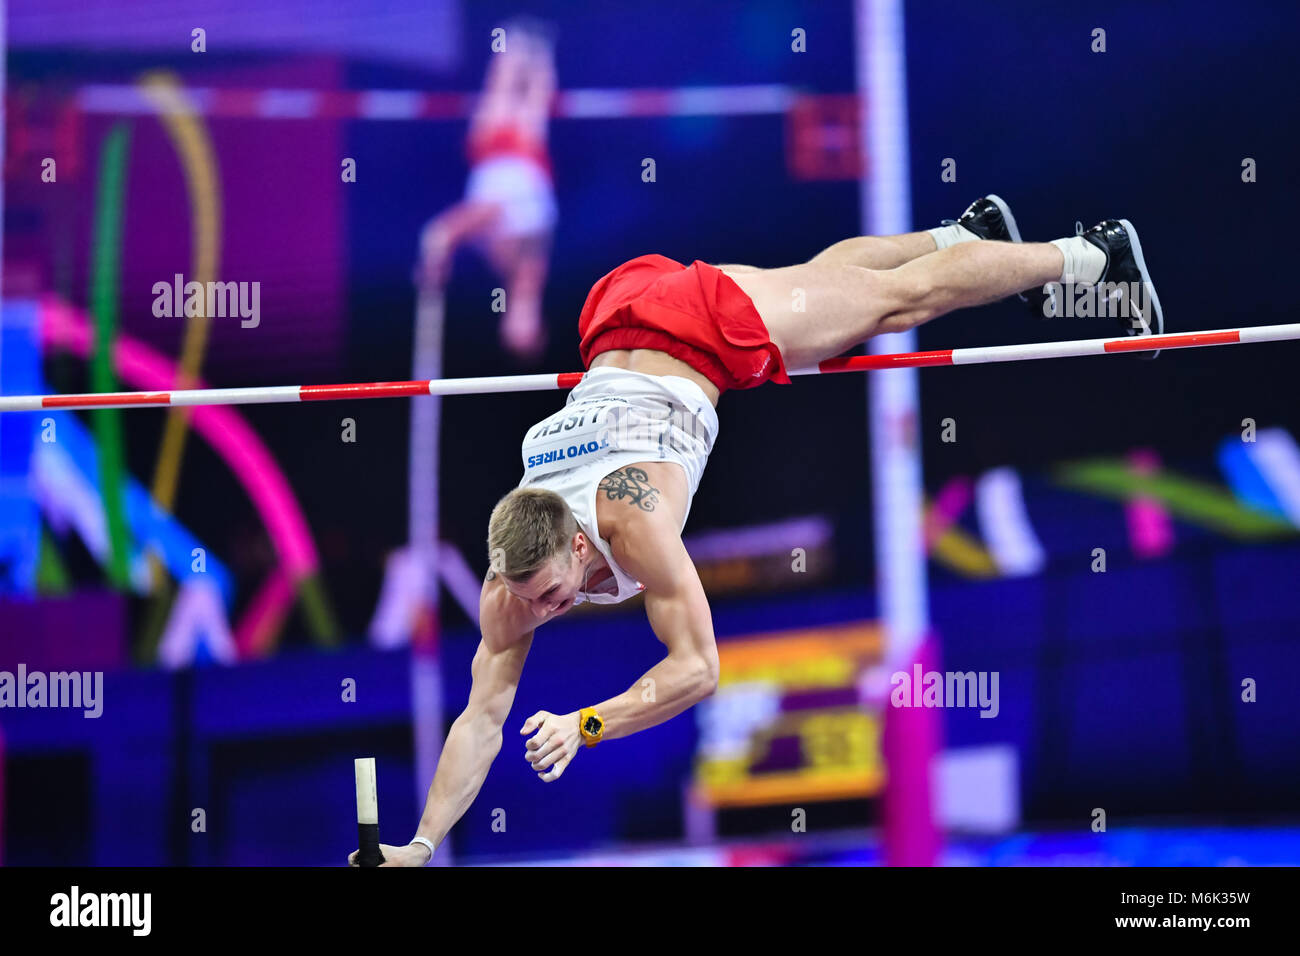 Birmingham, UK. 4th Mar, 2018. Piotr Liske in Men's Pole Vault Final during IAAF World Indoor Championships - Stock Image